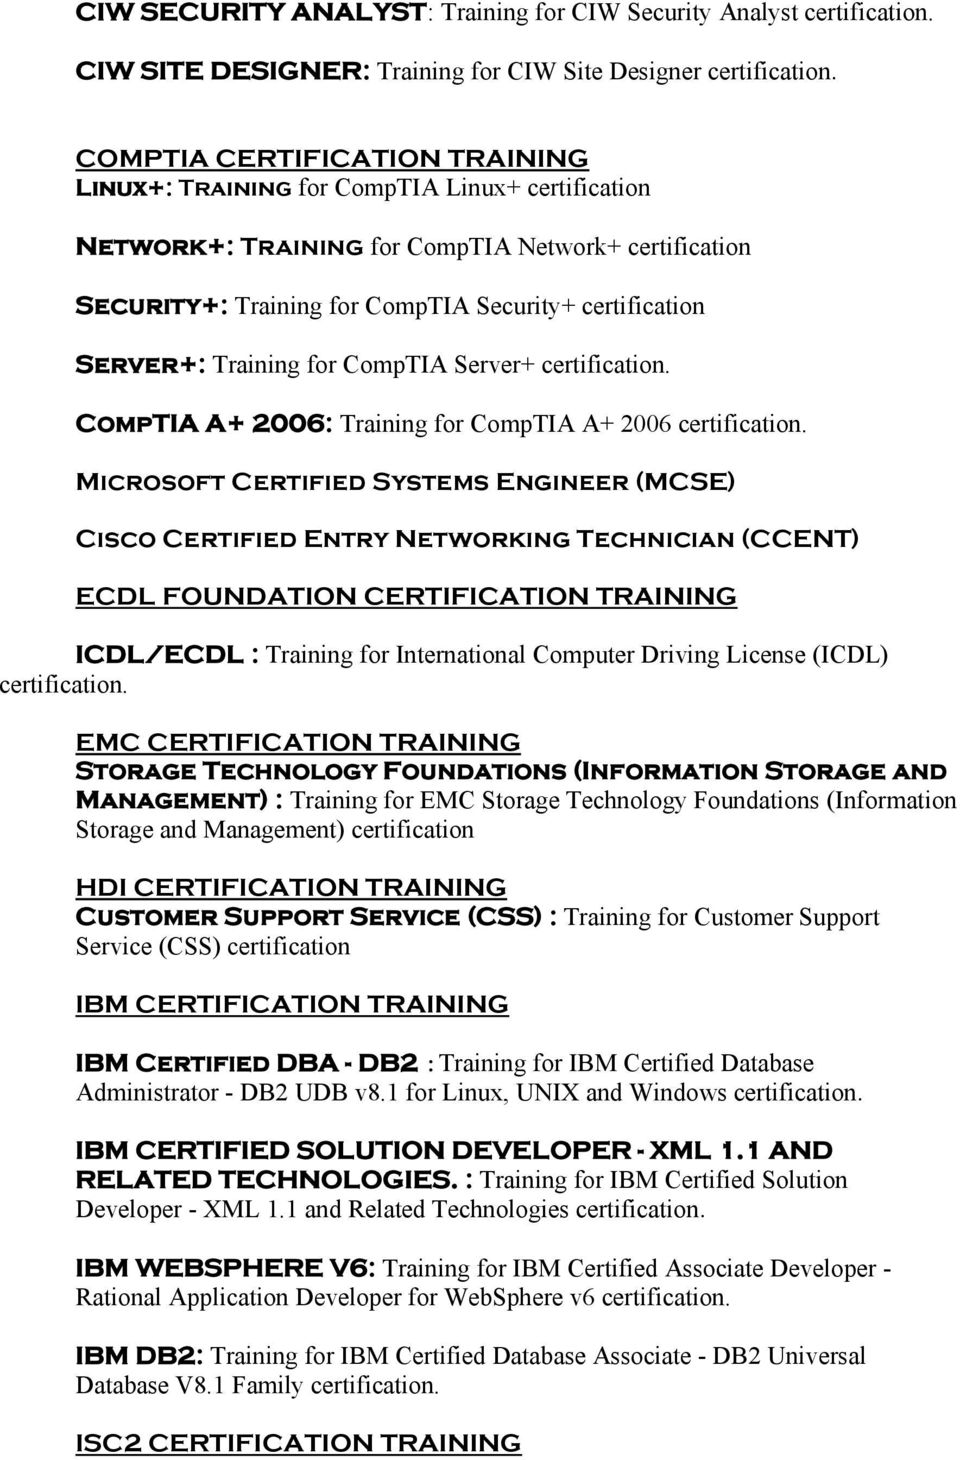 Certified Systems Engineer (MCSE) Cisco Certified Entry Networking Technician (CCENT) ECDL FOUNDATION CERTIFICATION TRAINING ICDL/ECDL : Training for International Computer Driving License (ICDL) EMC